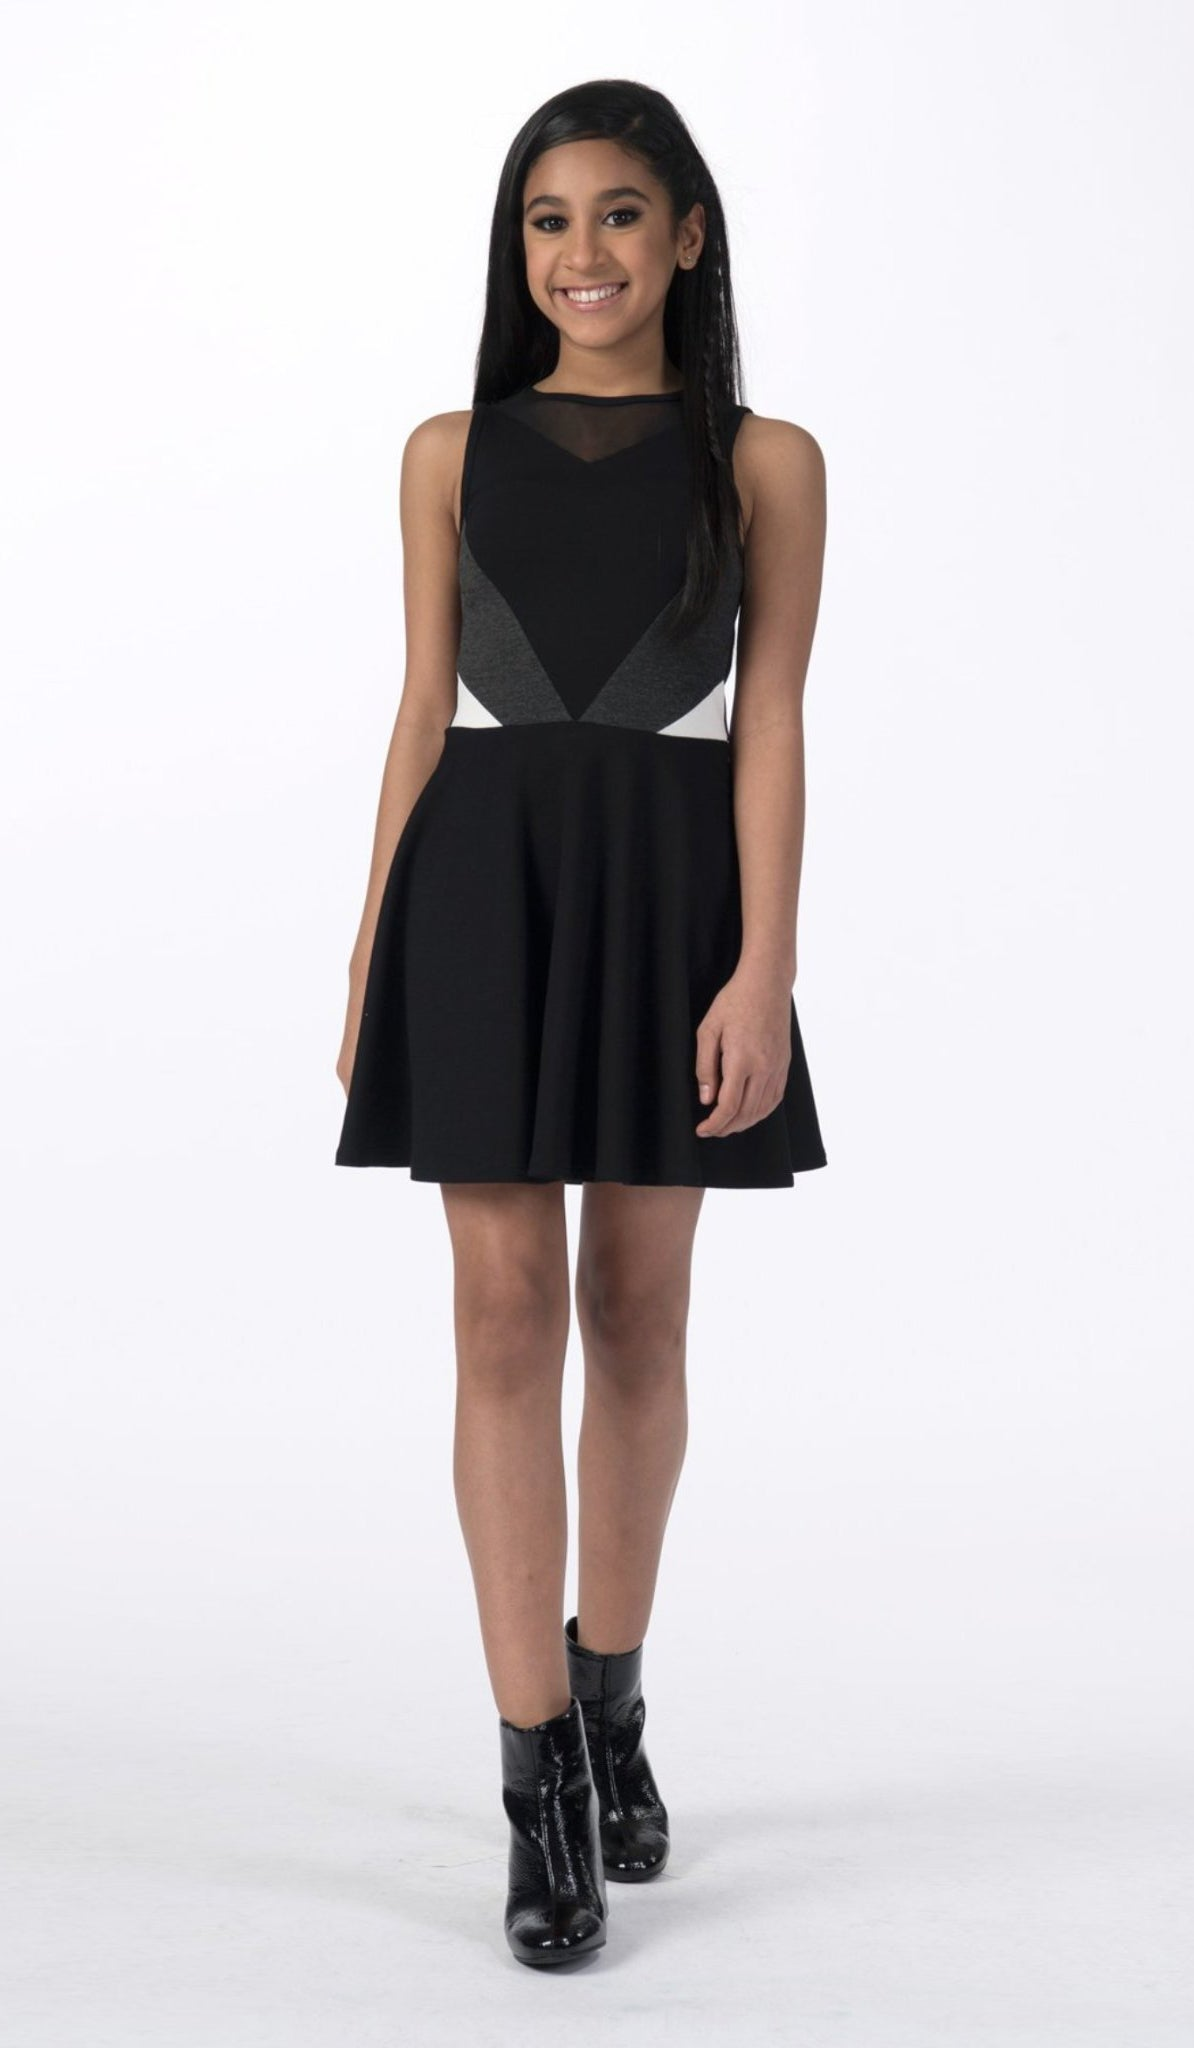 THE CASSIE DRESS - Sallymiller.com - [variant title] - | Event & Party Dresses for Tween Girls & Juniors | Weddings Dresses, Bat Mitzvah Dresses, Sweet Sixteen Dresses, Graduation Dresses, Birthday Party Dresses, Bar Mitzvah Dresses, Cotillion Dresses